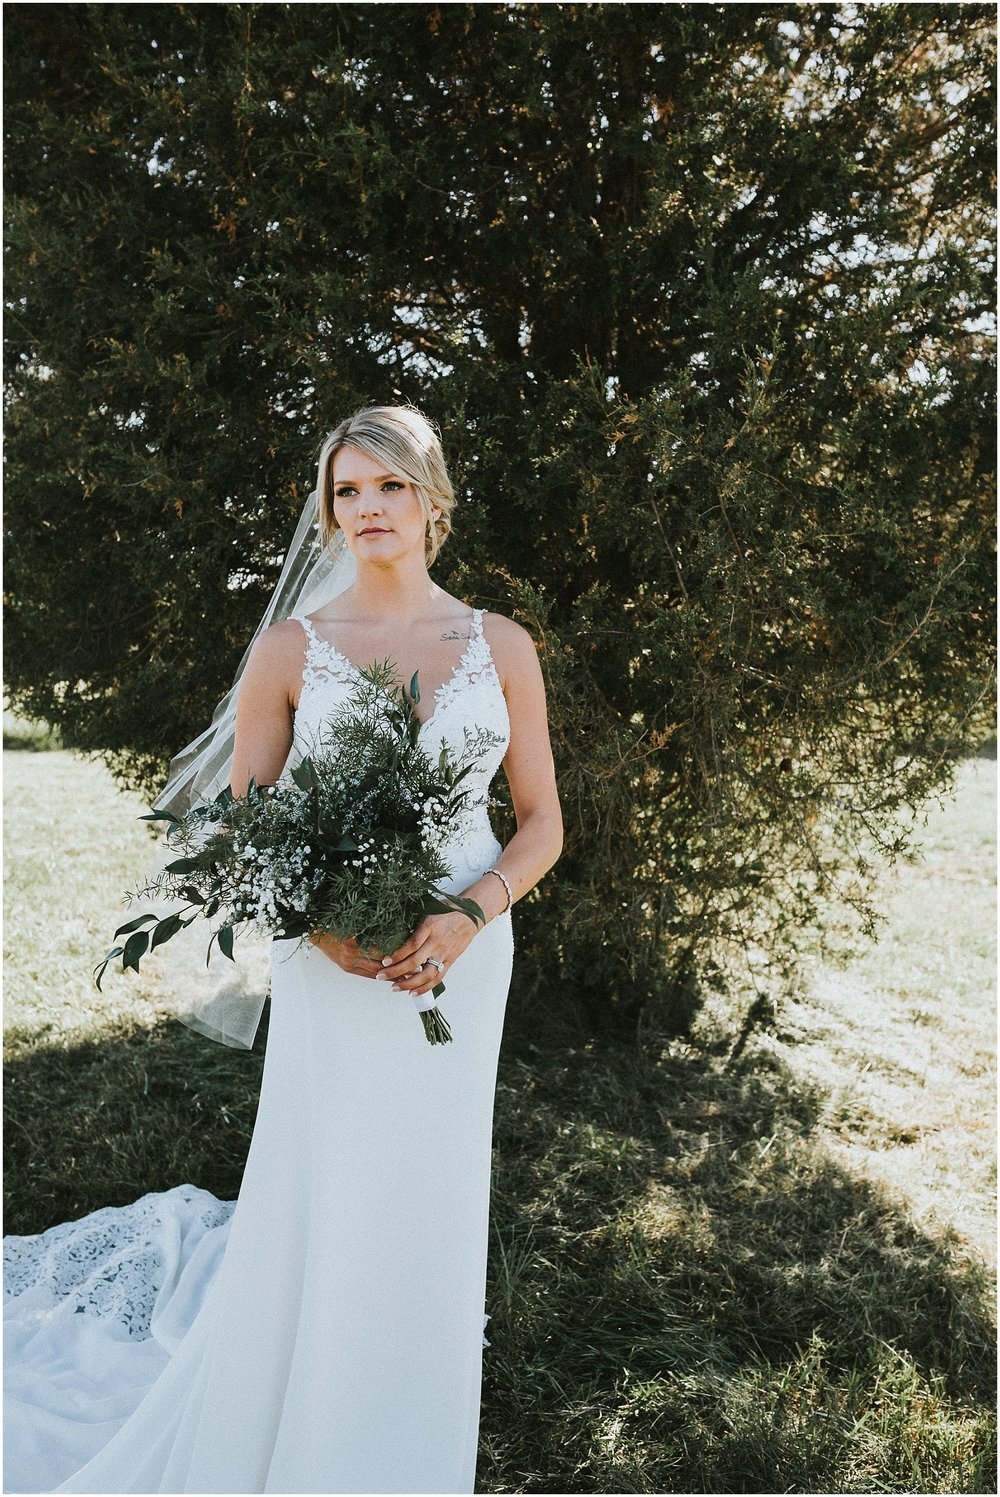 Bridal Portraits in an open country field